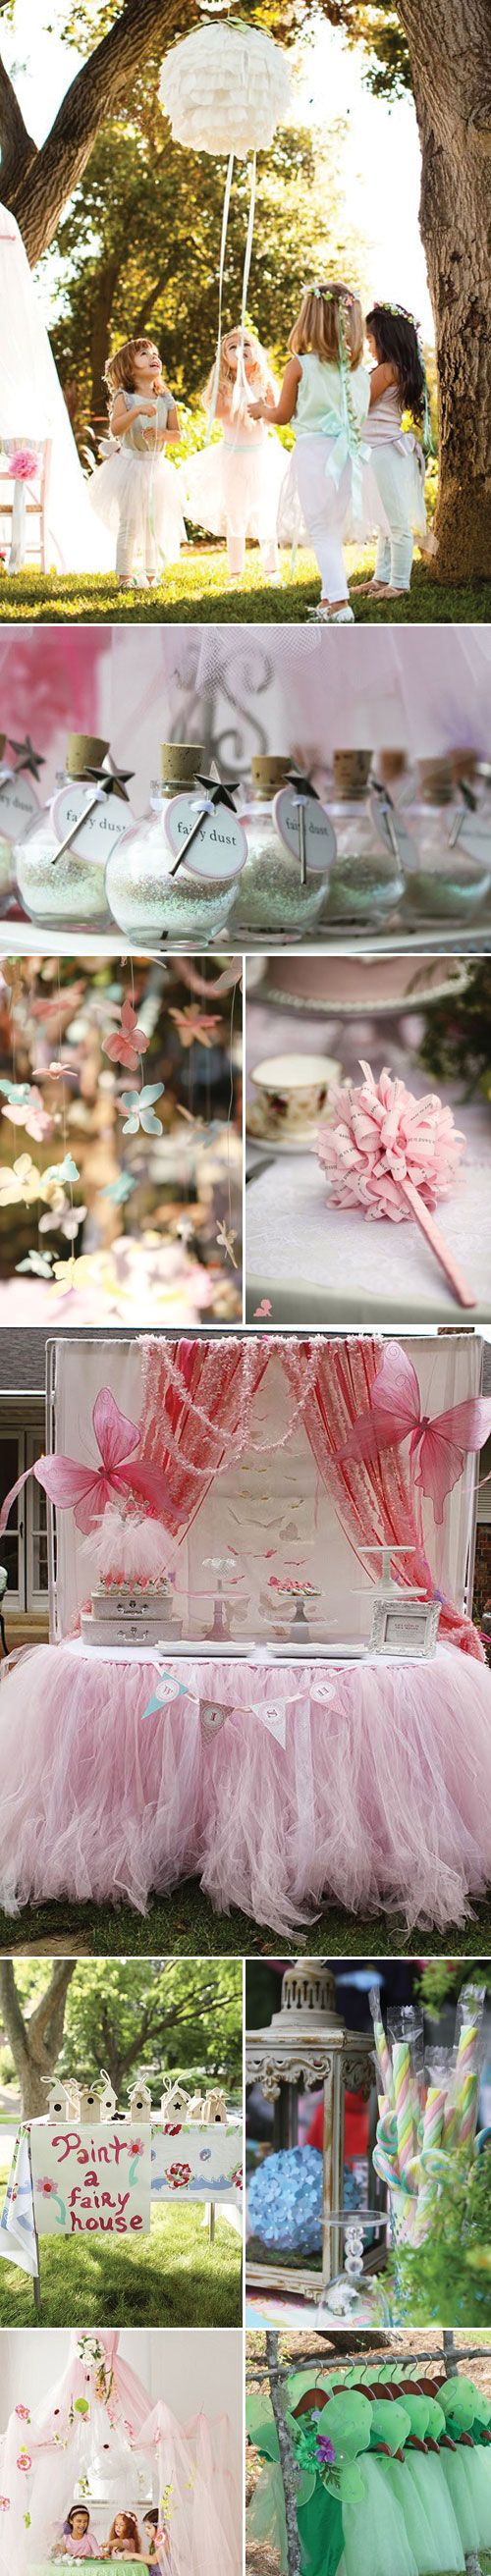 fairy party ideasLittle Girls, Birthday Parties, Fairies Birthday, Fairies House, Parties Ideas, Fairies Parties, Princesses Parties, Girls Parties, Birthday Ideas